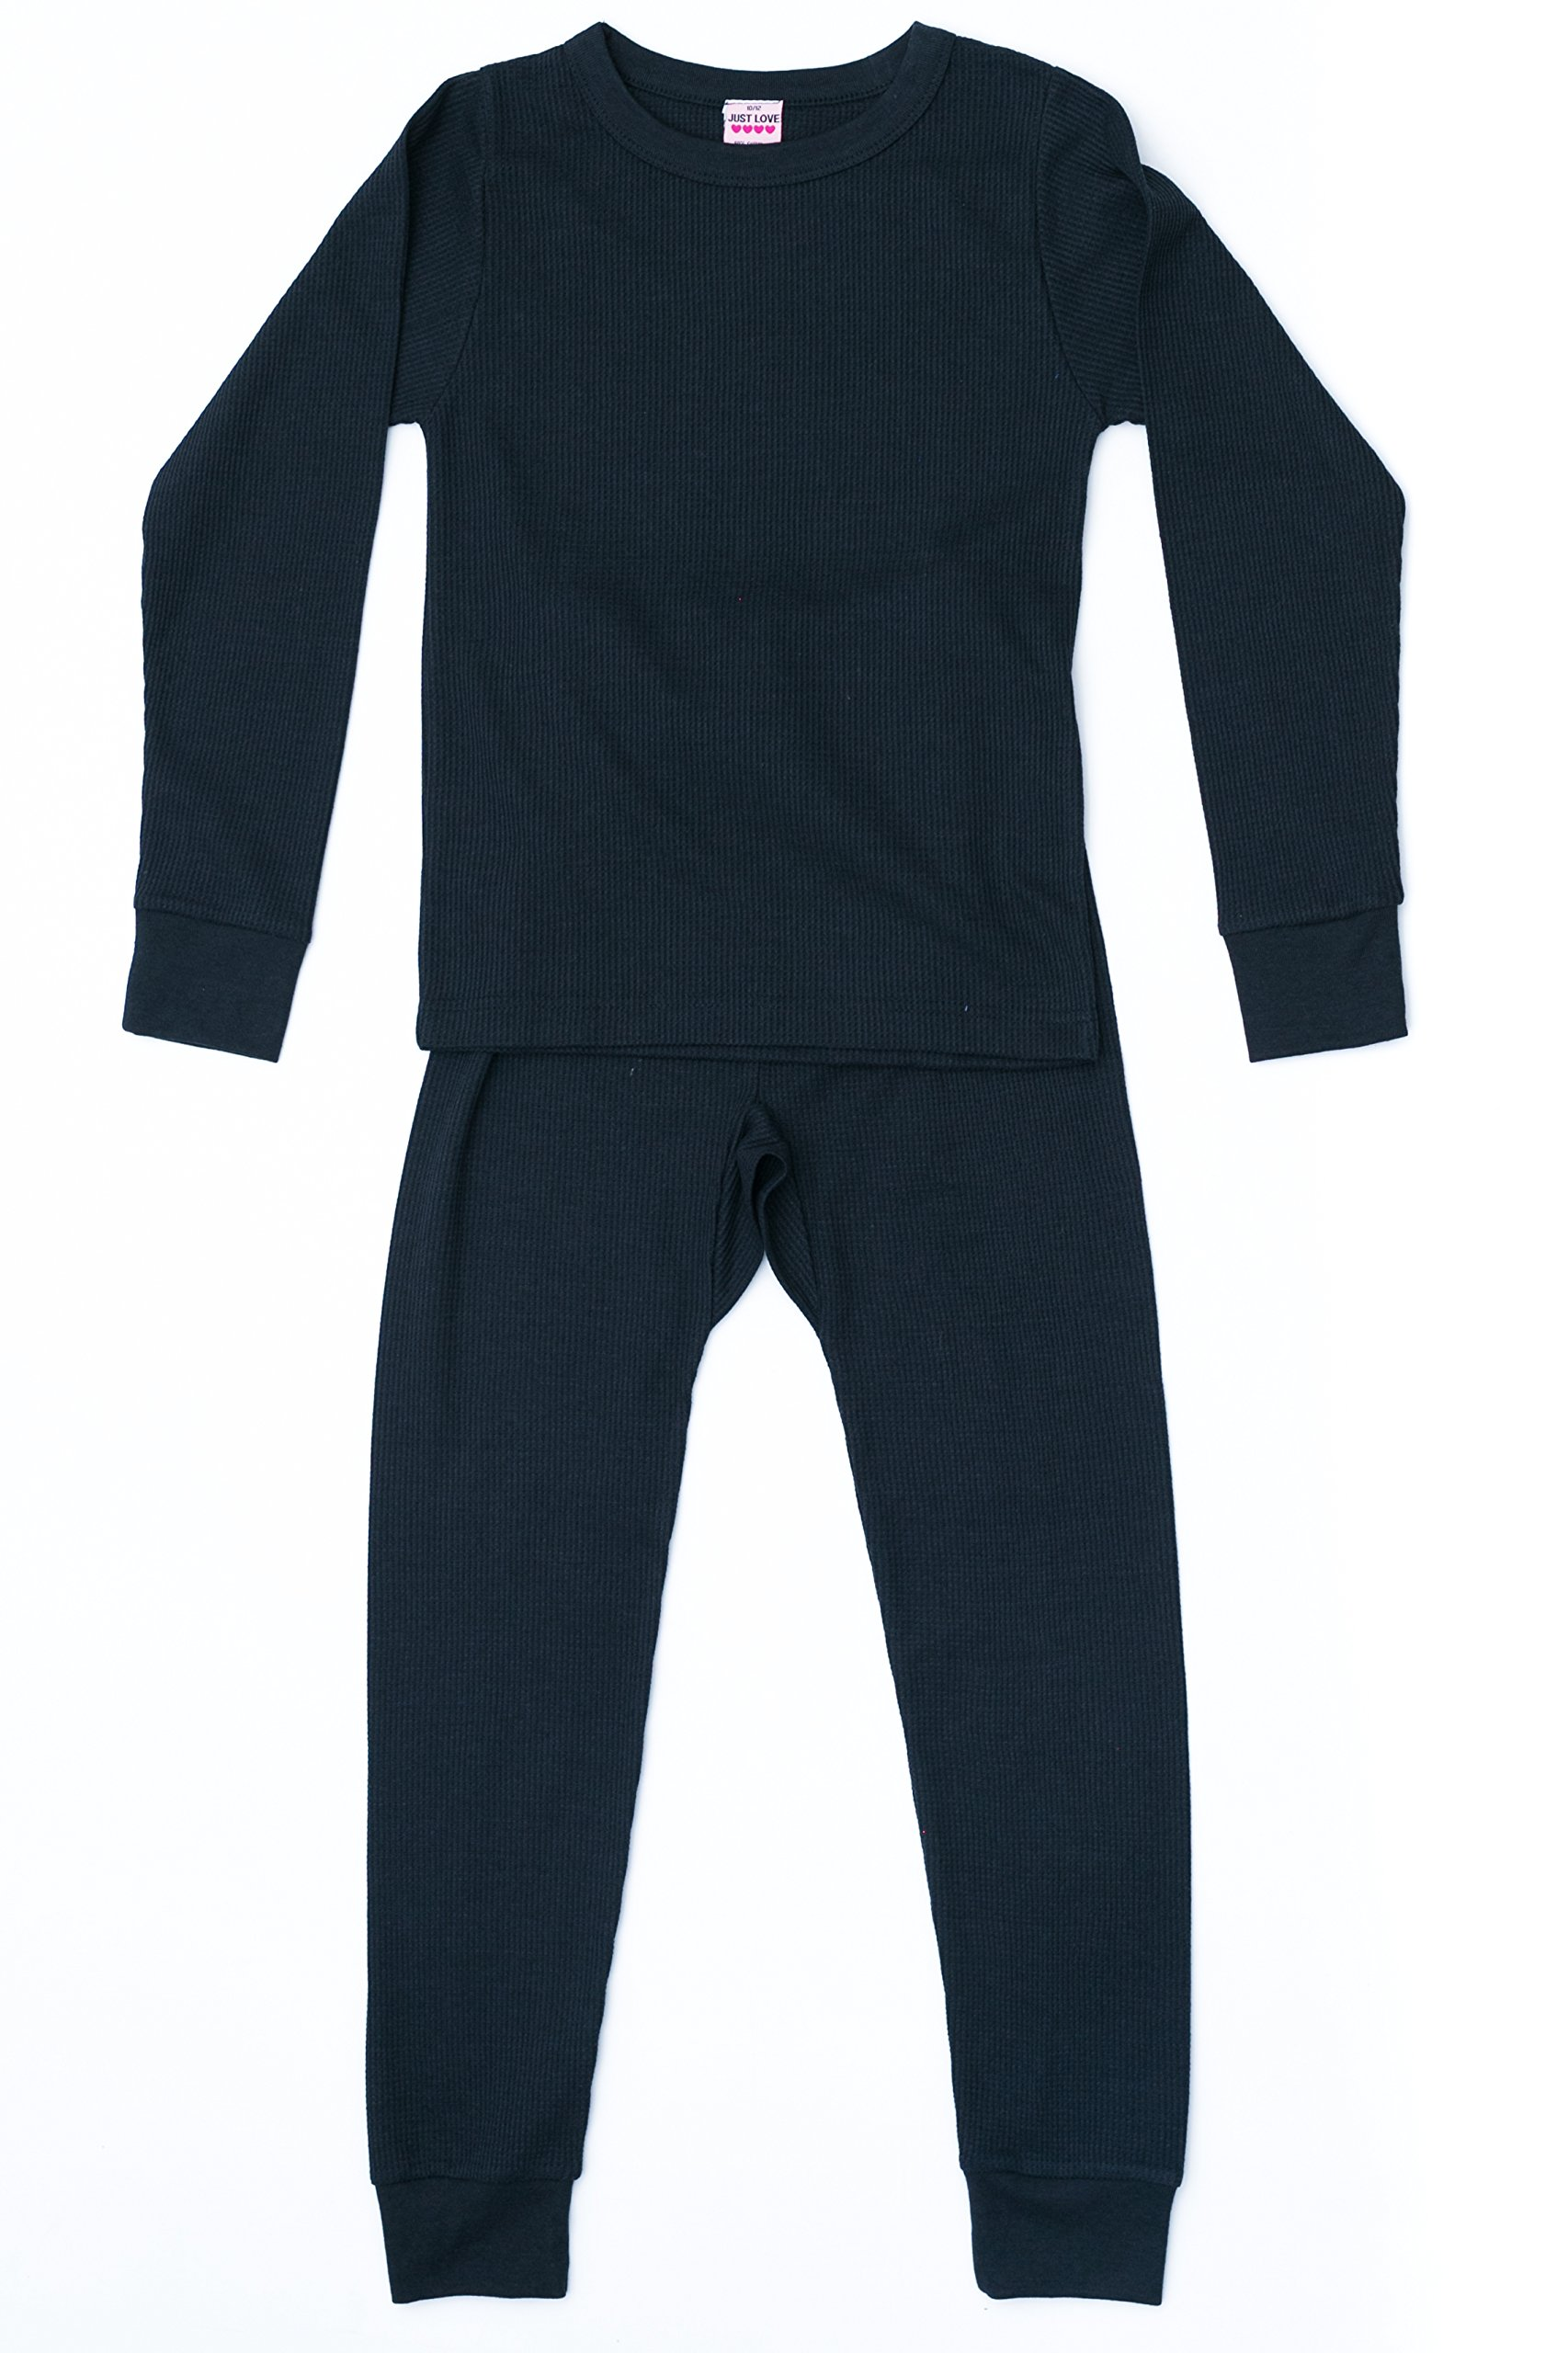 Just Love 95462-Black-7/8 Thermal Underwear Set for Girls